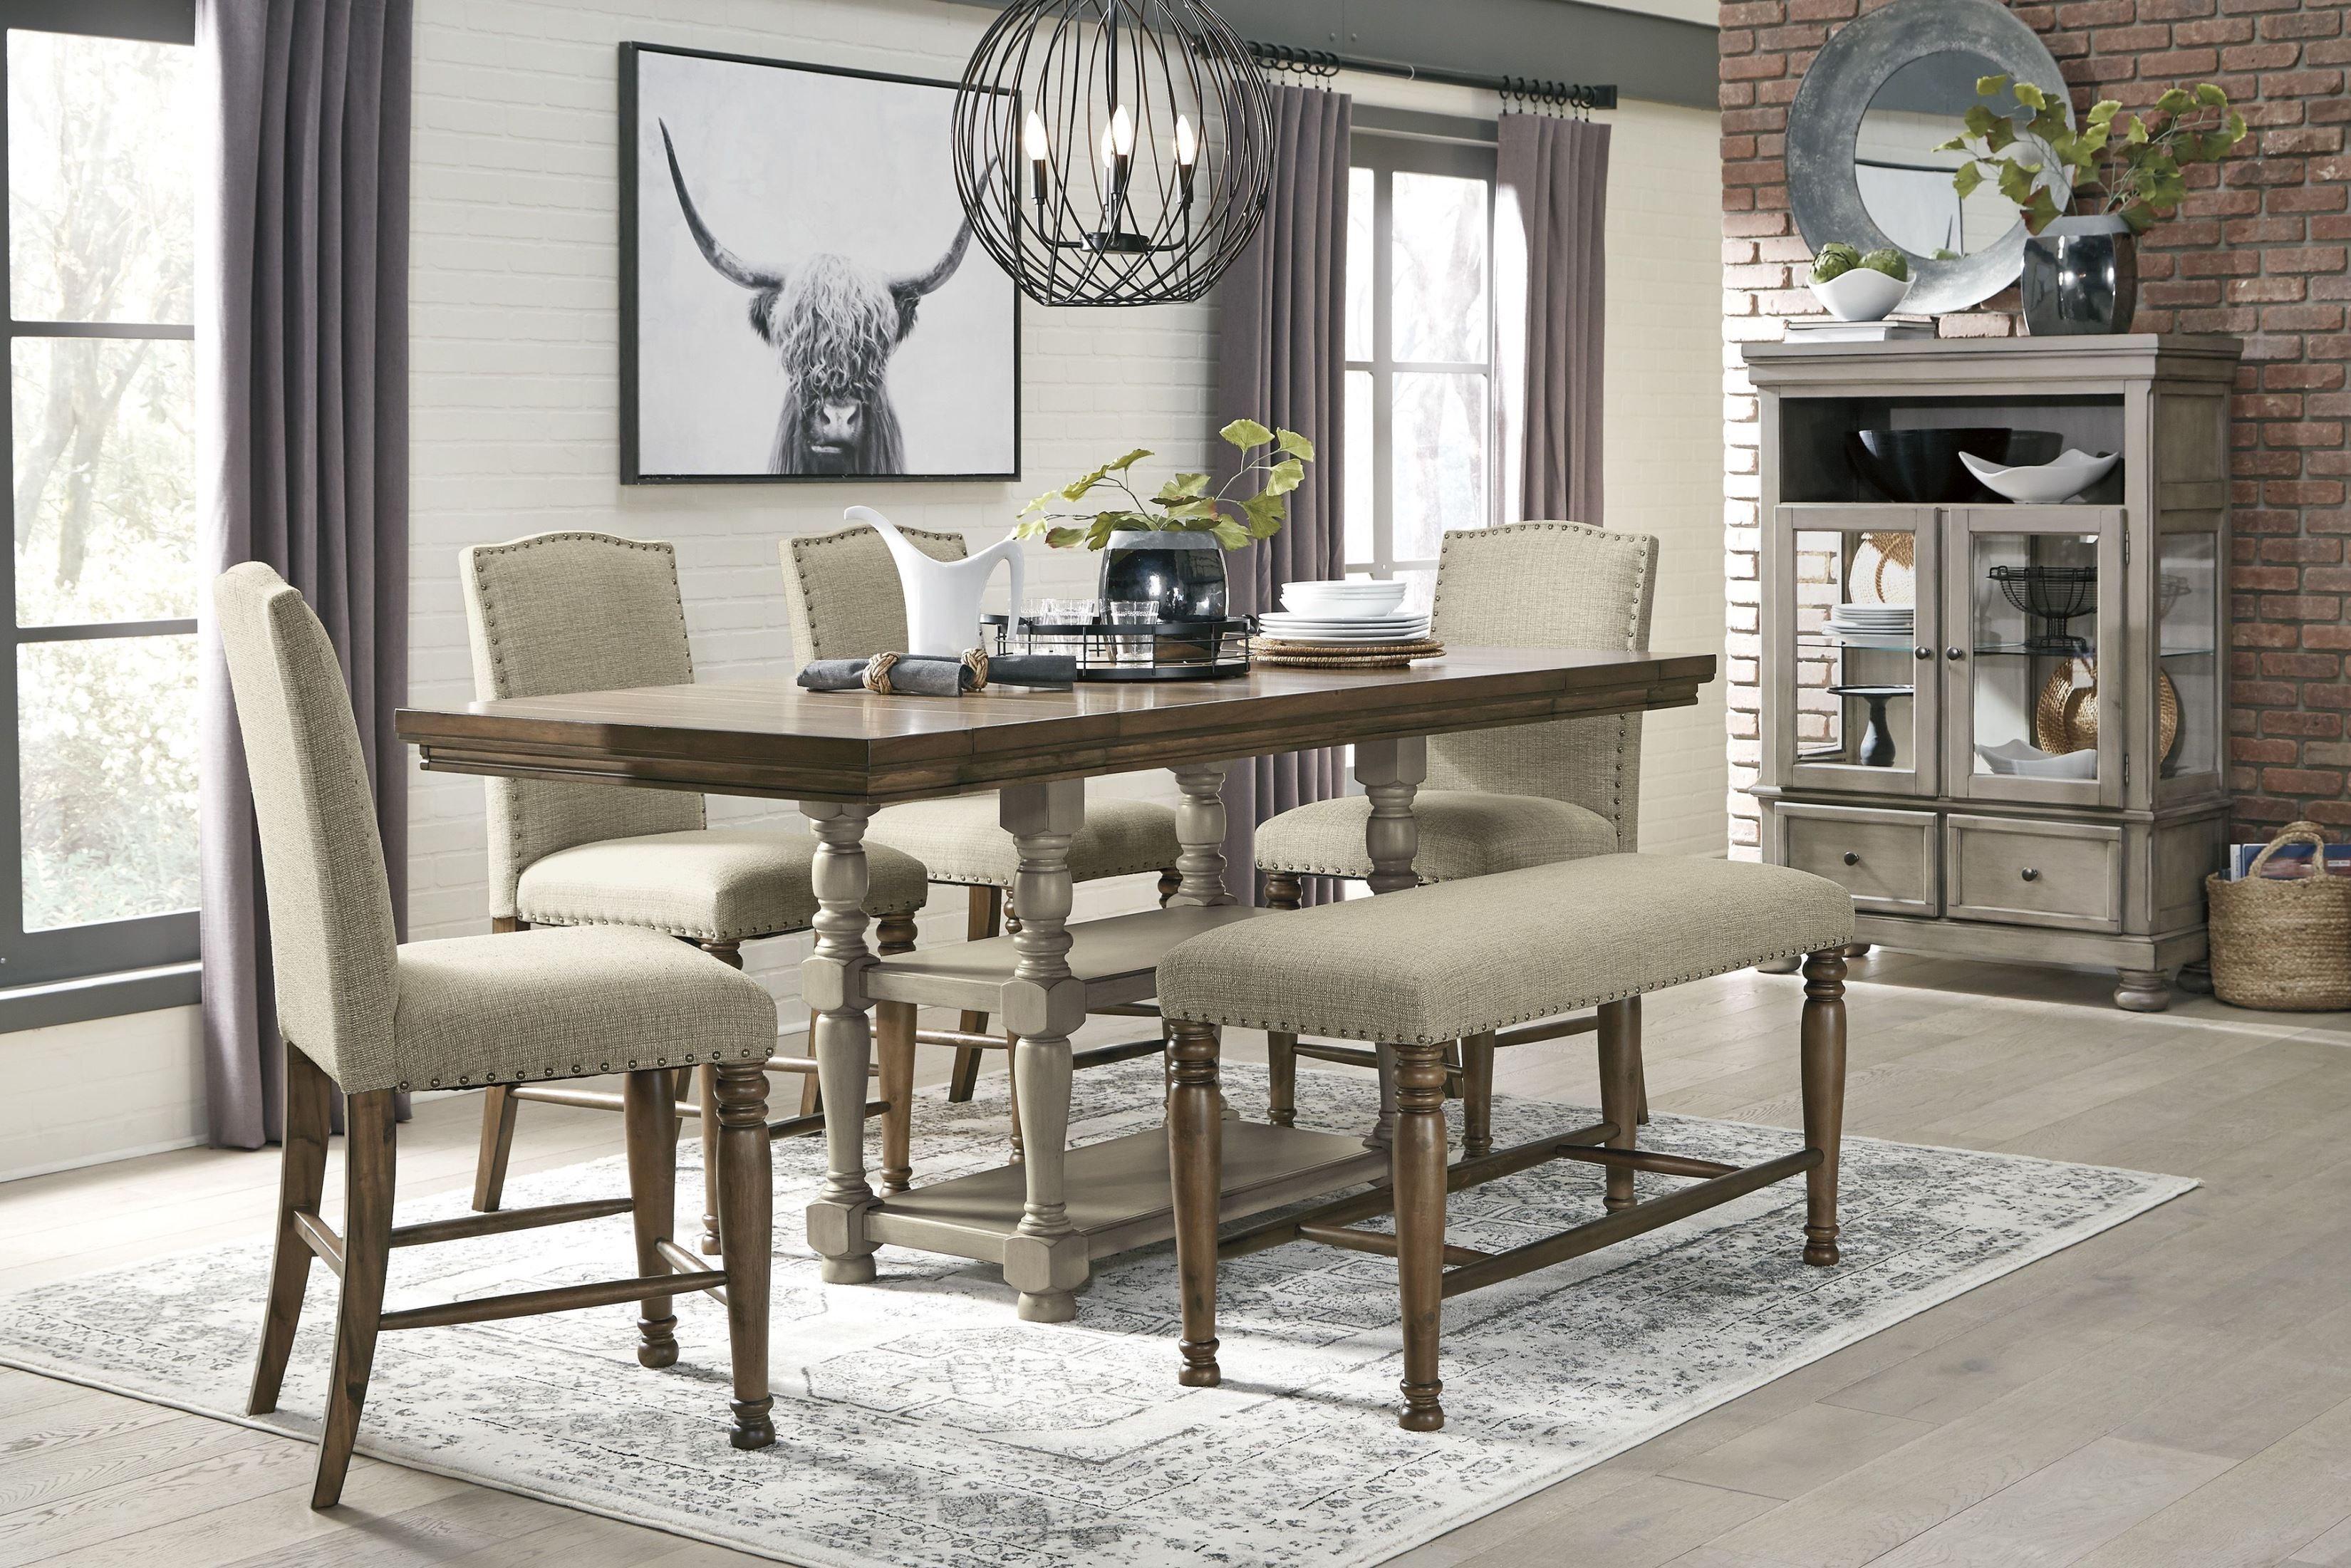 Groovy Lettner Gray And Brown Counter Height Dining Room Set From Interior Design Ideas Tzicisoteloinfo